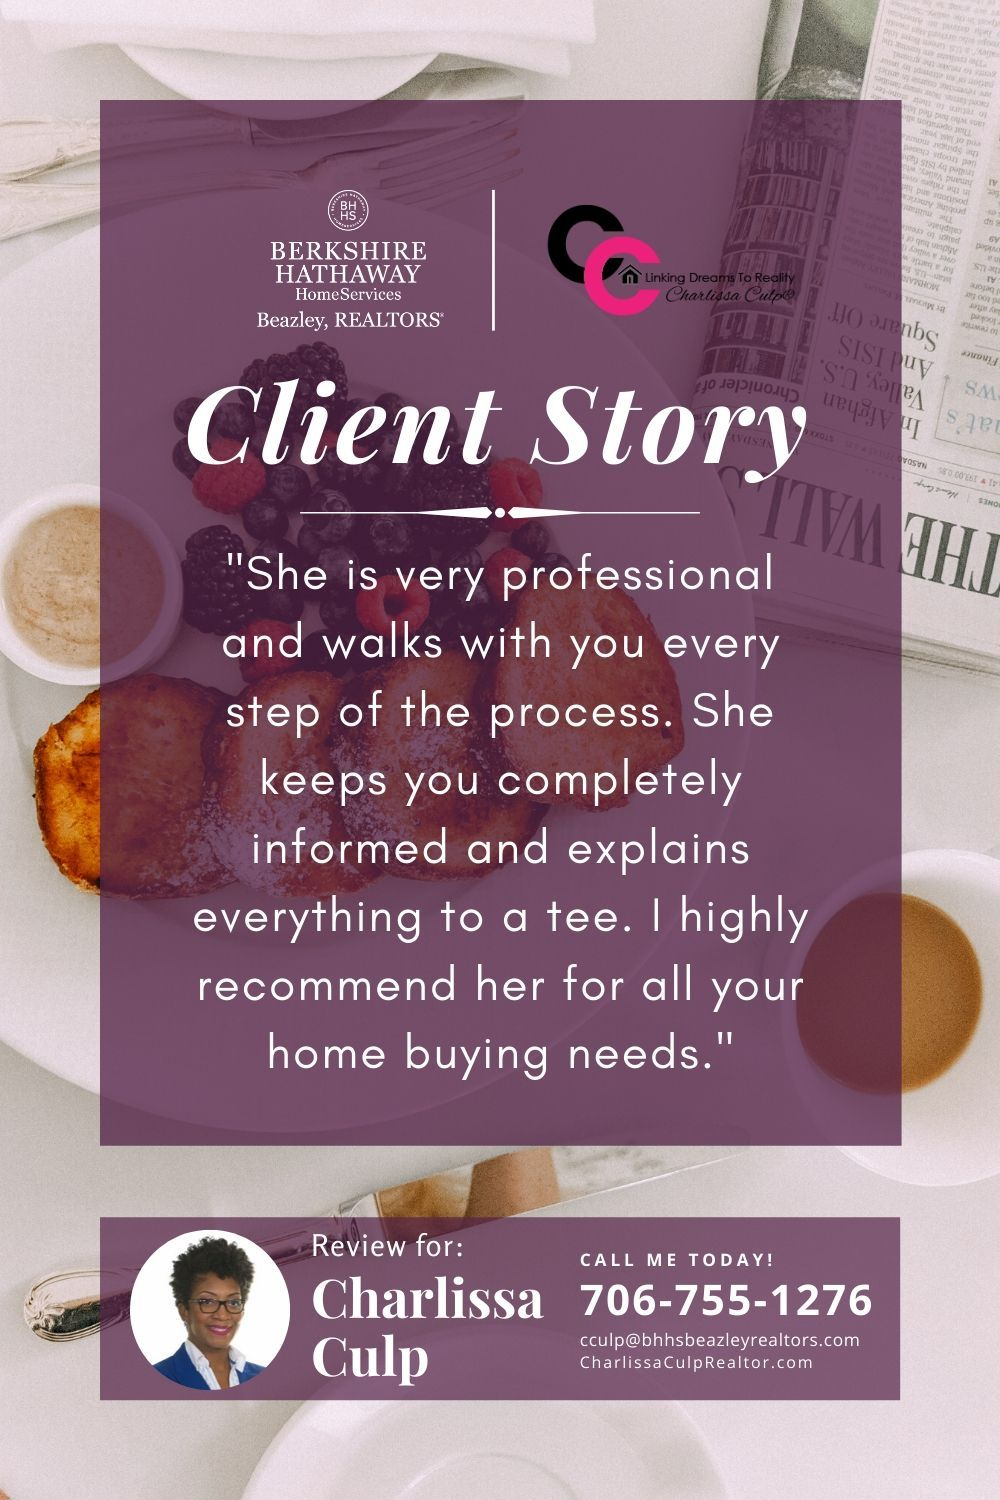 Client Appreciation Quote Realtor Charlissa Culp Berkshire Hathaway Homeservices In 2020 Client Appreciation Clients Appreciation Quotes